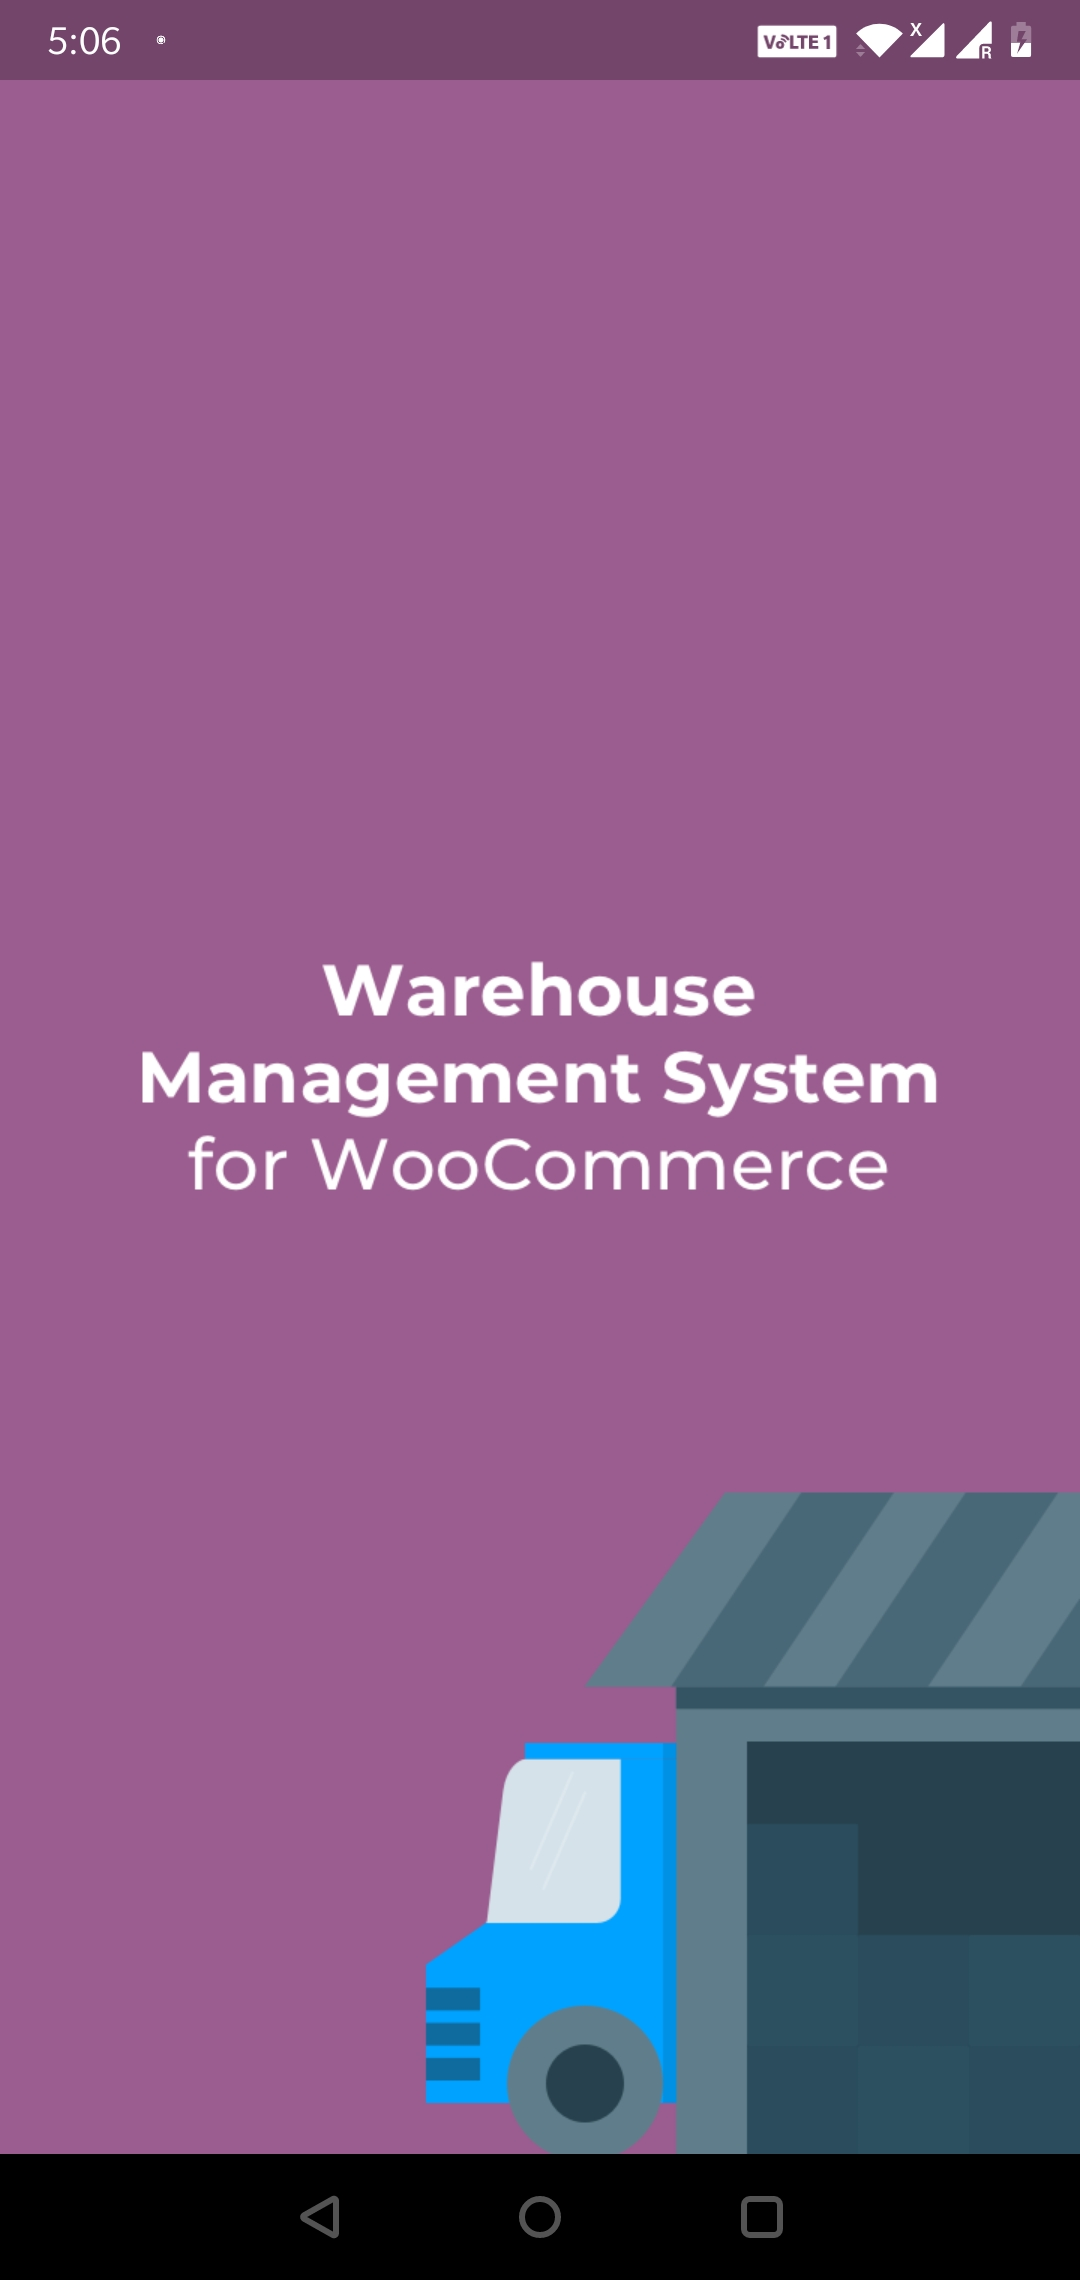 Warehouse Management System (WMS) Mobile App for WooCommerce